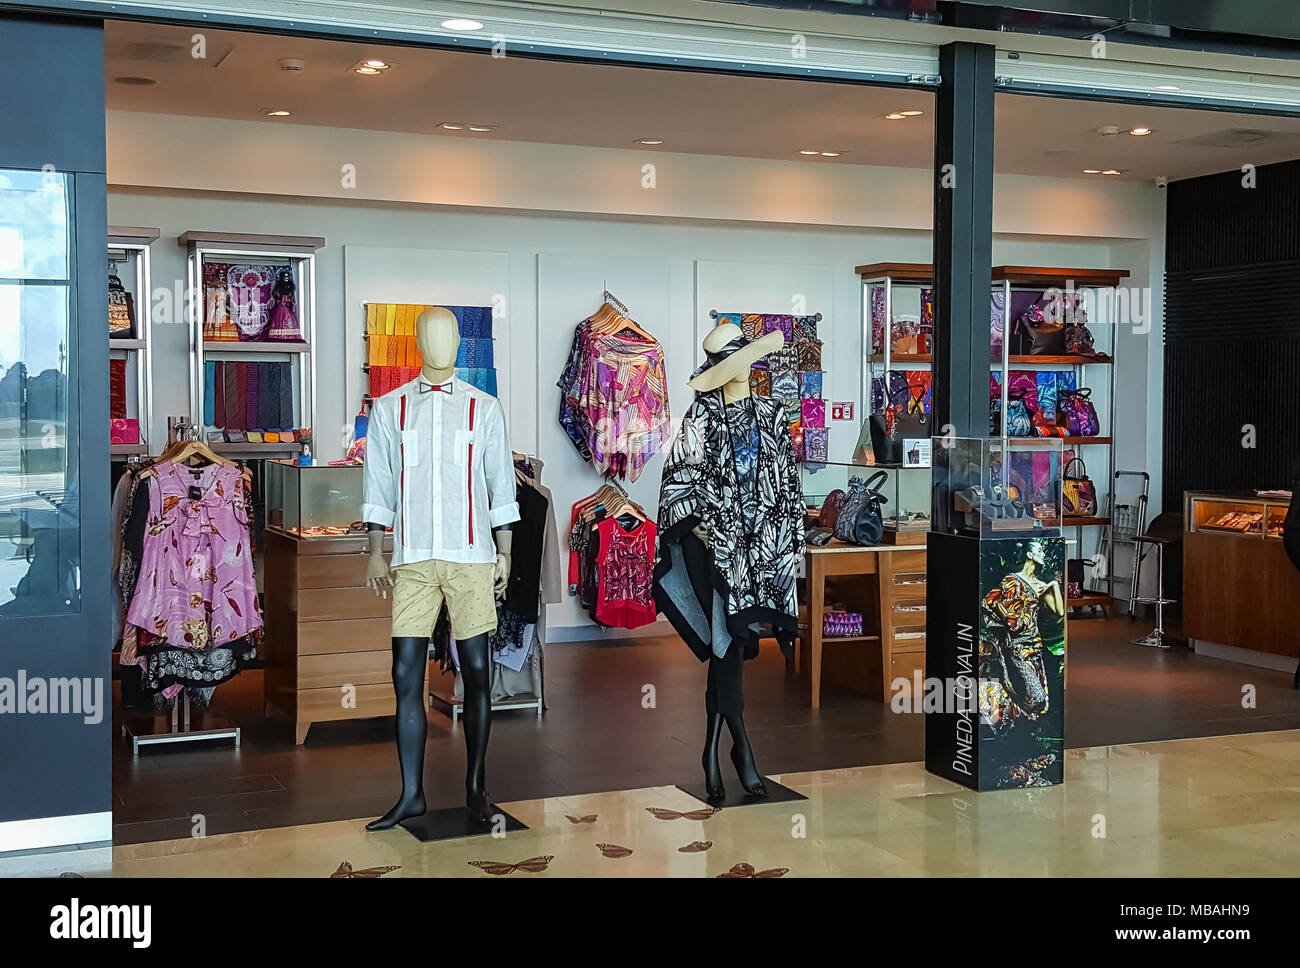 Mexican Clothes Shop High Resolution Stock Photography And Images Alamy